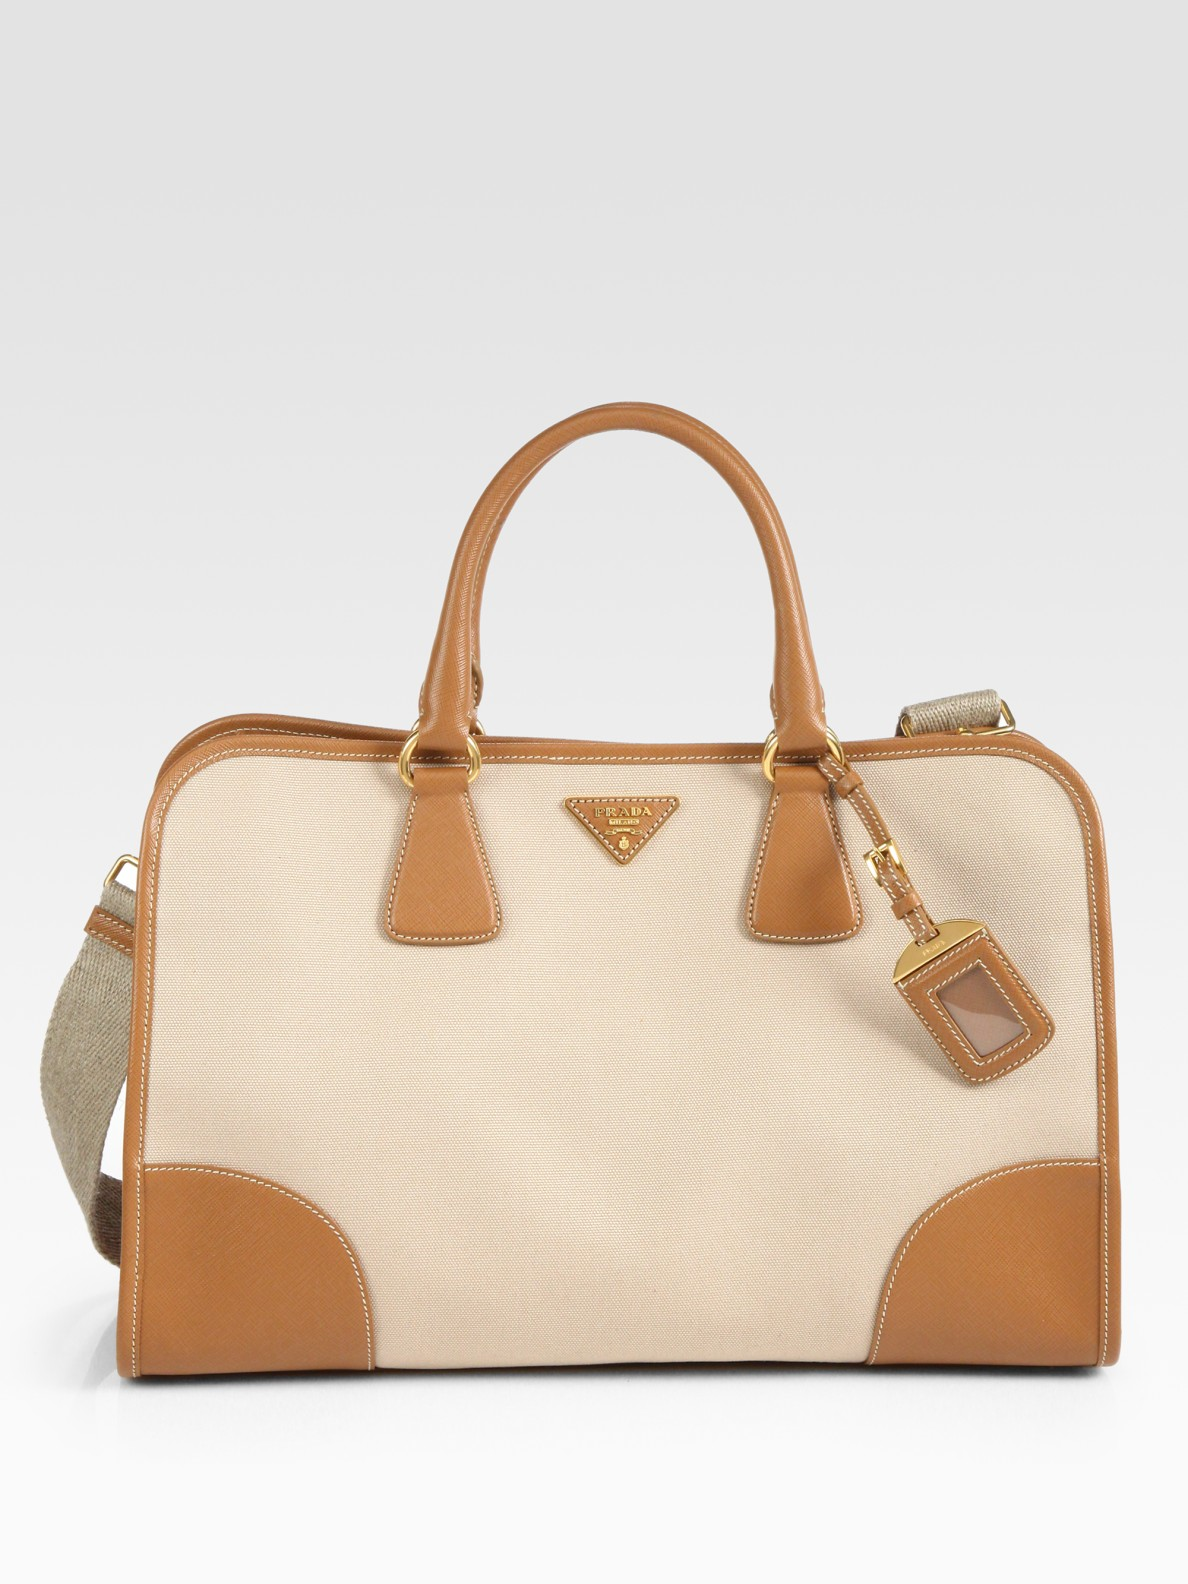 23a31c3f2621 Prada Saffiano Leather & Canvas Top Handle Bag in Natural - Lyst